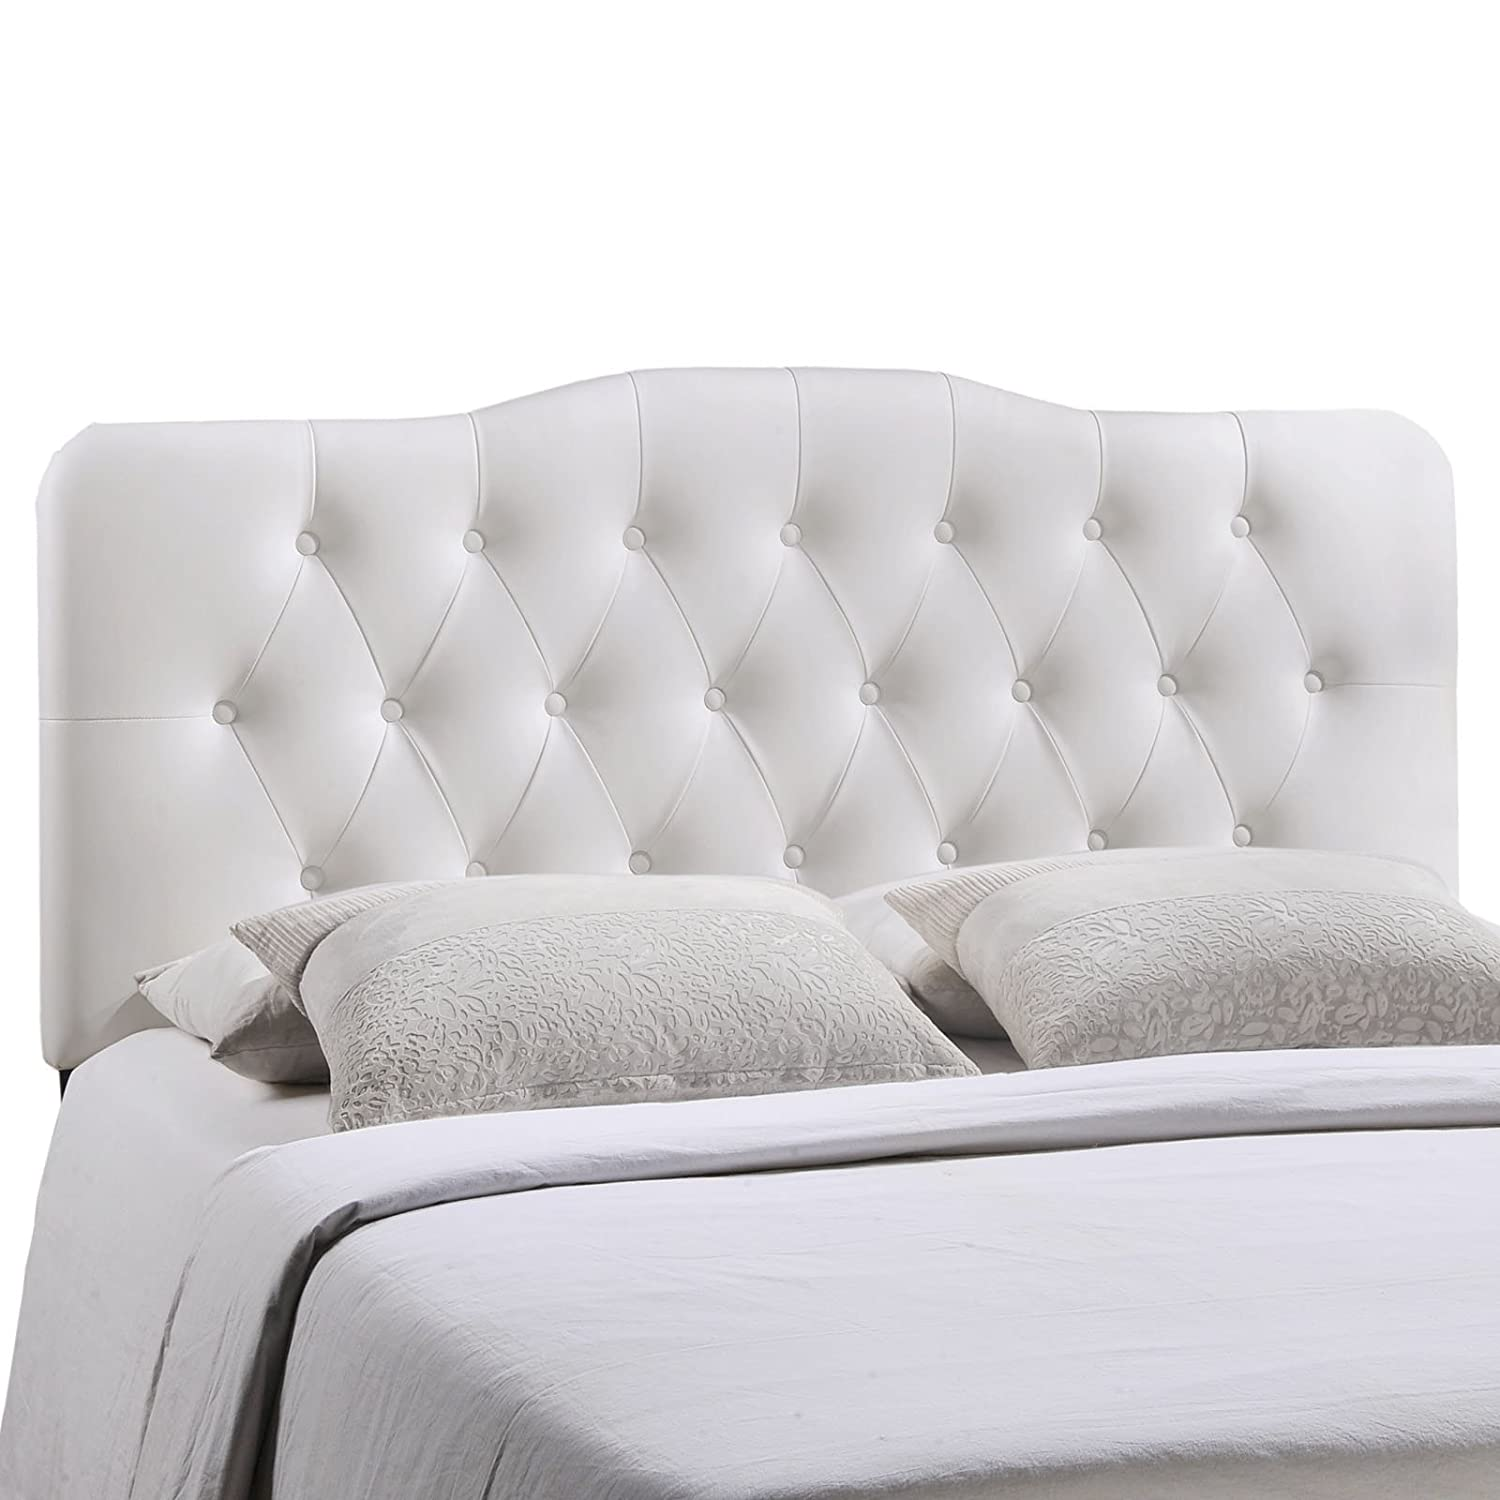 w tufted headboard crystal bed eastern king size metallic p belmont side leatherette button rails